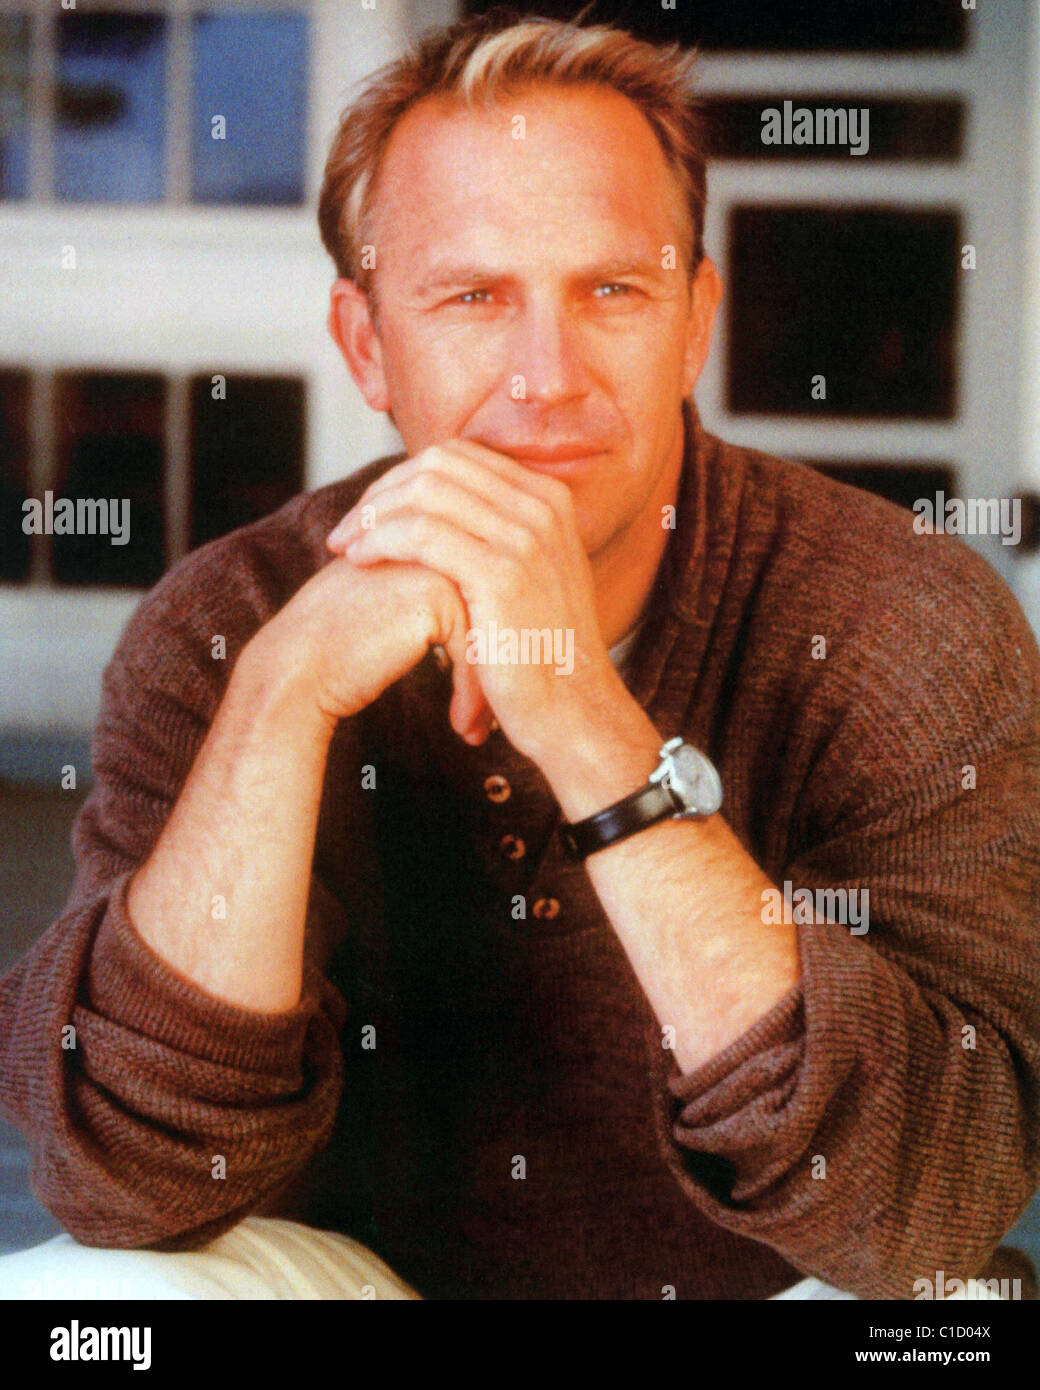 MESSAGE IN A BOTTLE 1999 Warner Brothers film with Kevin Costner - Stock Image